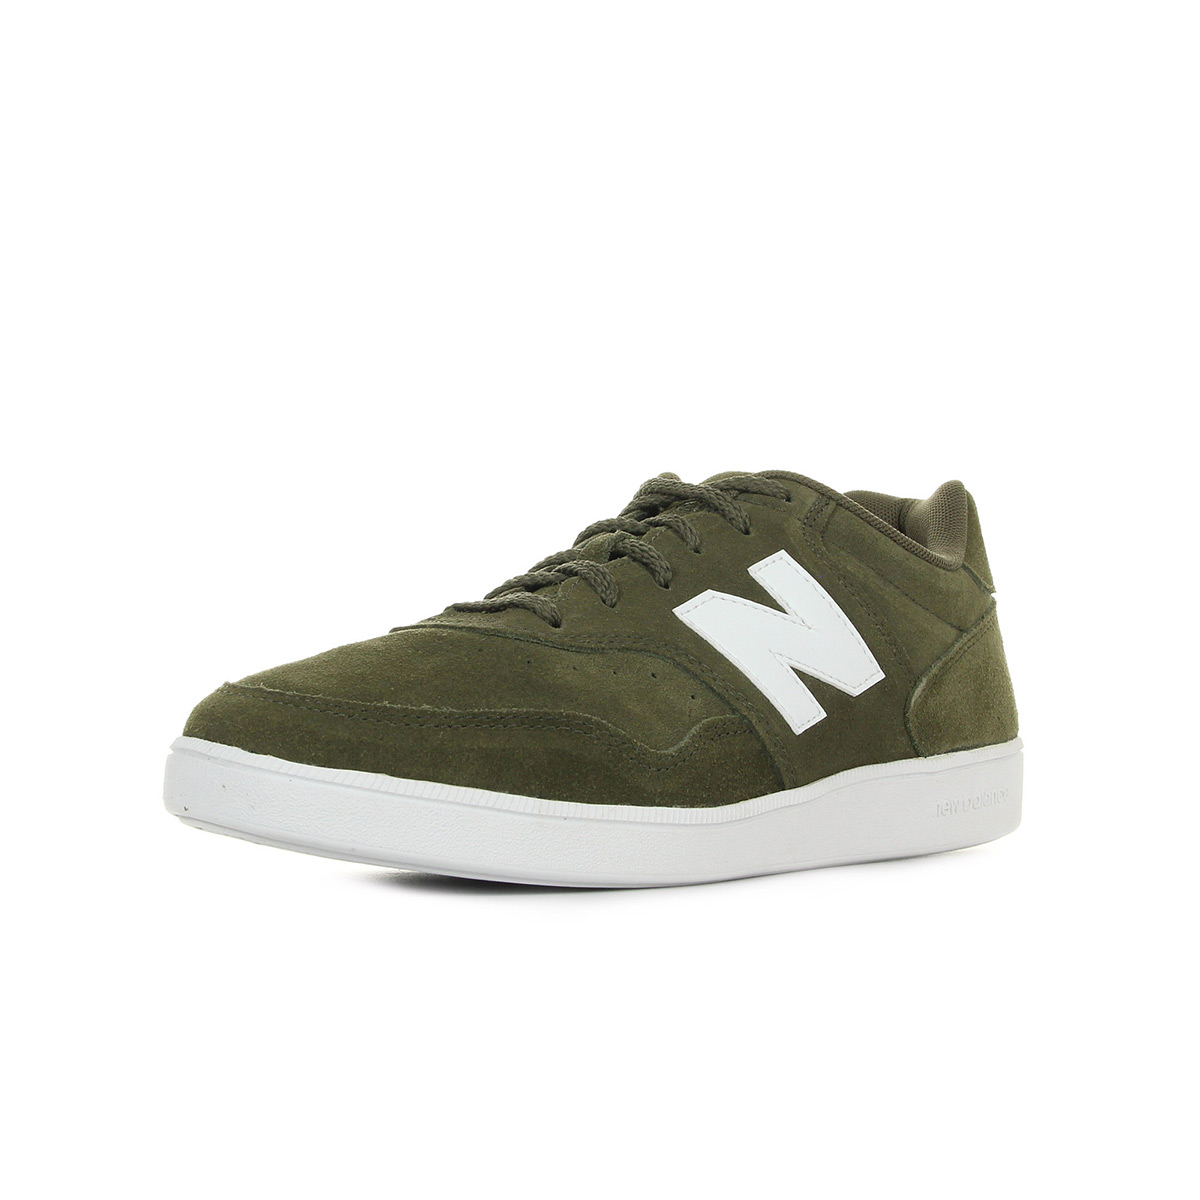 Chaussures Baskets New Balance unisexe CT288 OW taille Vert olive Verte Cuir